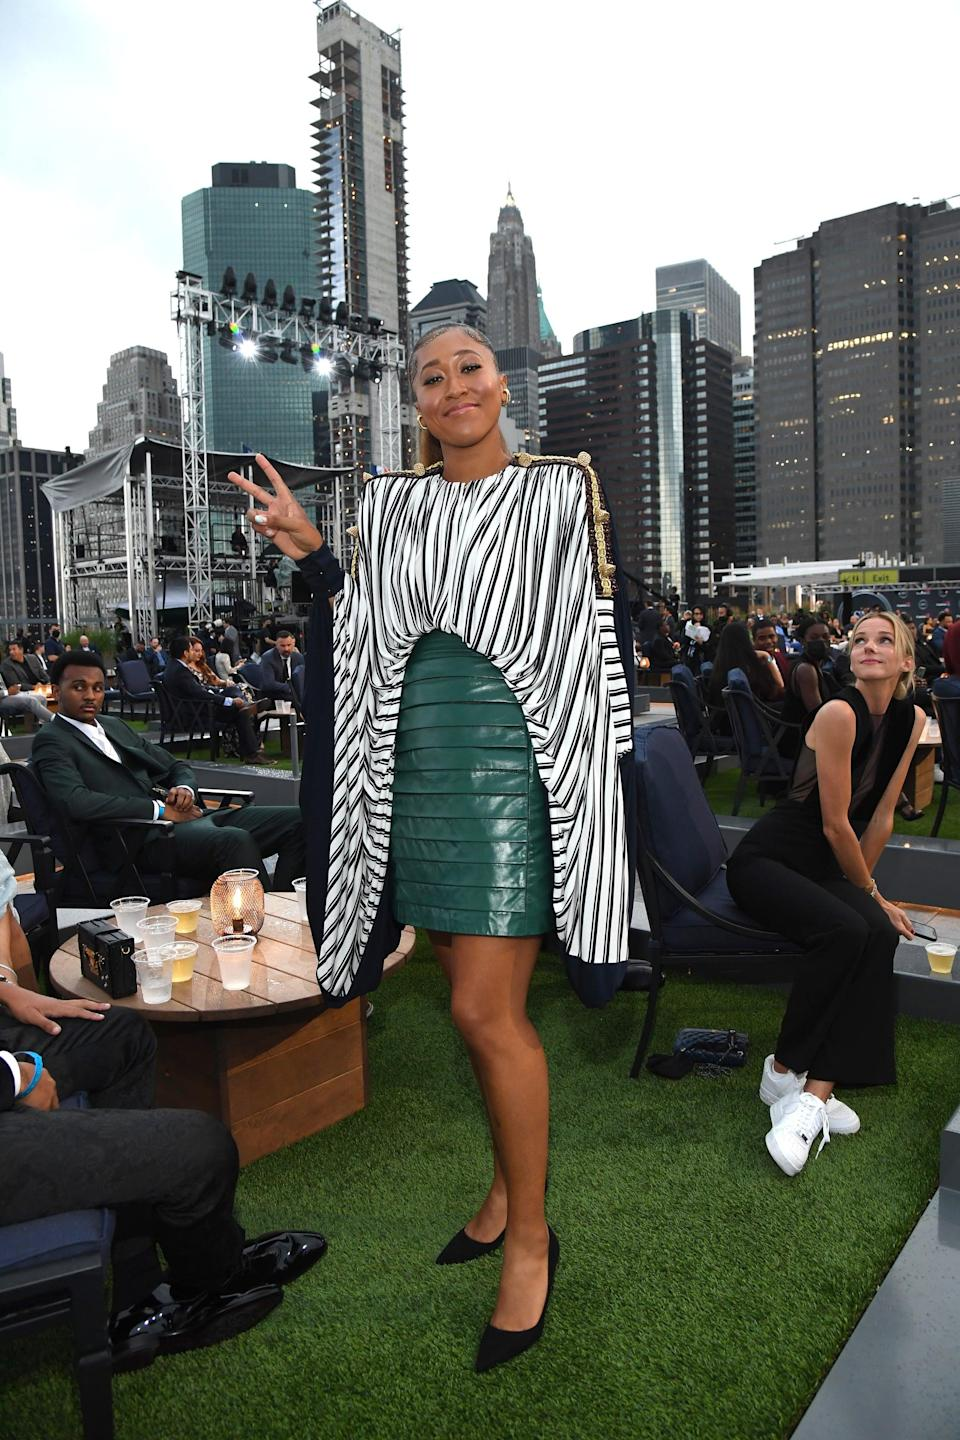 """<p>At the 2021 ESPY Awards, <a href=""""https://www.popsugar.com/fitness/naomi-osaka-wins-best-athlete-womens-sports-2021-espys-48413471"""" class=""""link rapid-noclick-resp"""" rel=""""nofollow noopener"""" target=""""_blank"""" data-ylk=""""slk:Naomi was awarded best athlete in women's sports"""">Naomi was awarded best athlete in women's sports</a>, and though the couple did not make their red carpet debut, they did take a few photos together before and after the awards ceremony, which <a href=""""http://www.instagram.com/p/CRMilBcJH15/"""" class=""""link rapid-noclick-resp"""" rel=""""nofollow noopener"""" target=""""_blank"""" data-ylk=""""slk:Naomi later shared to Instagram"""">Naomi later shared to Instagram</a>. </p>"""